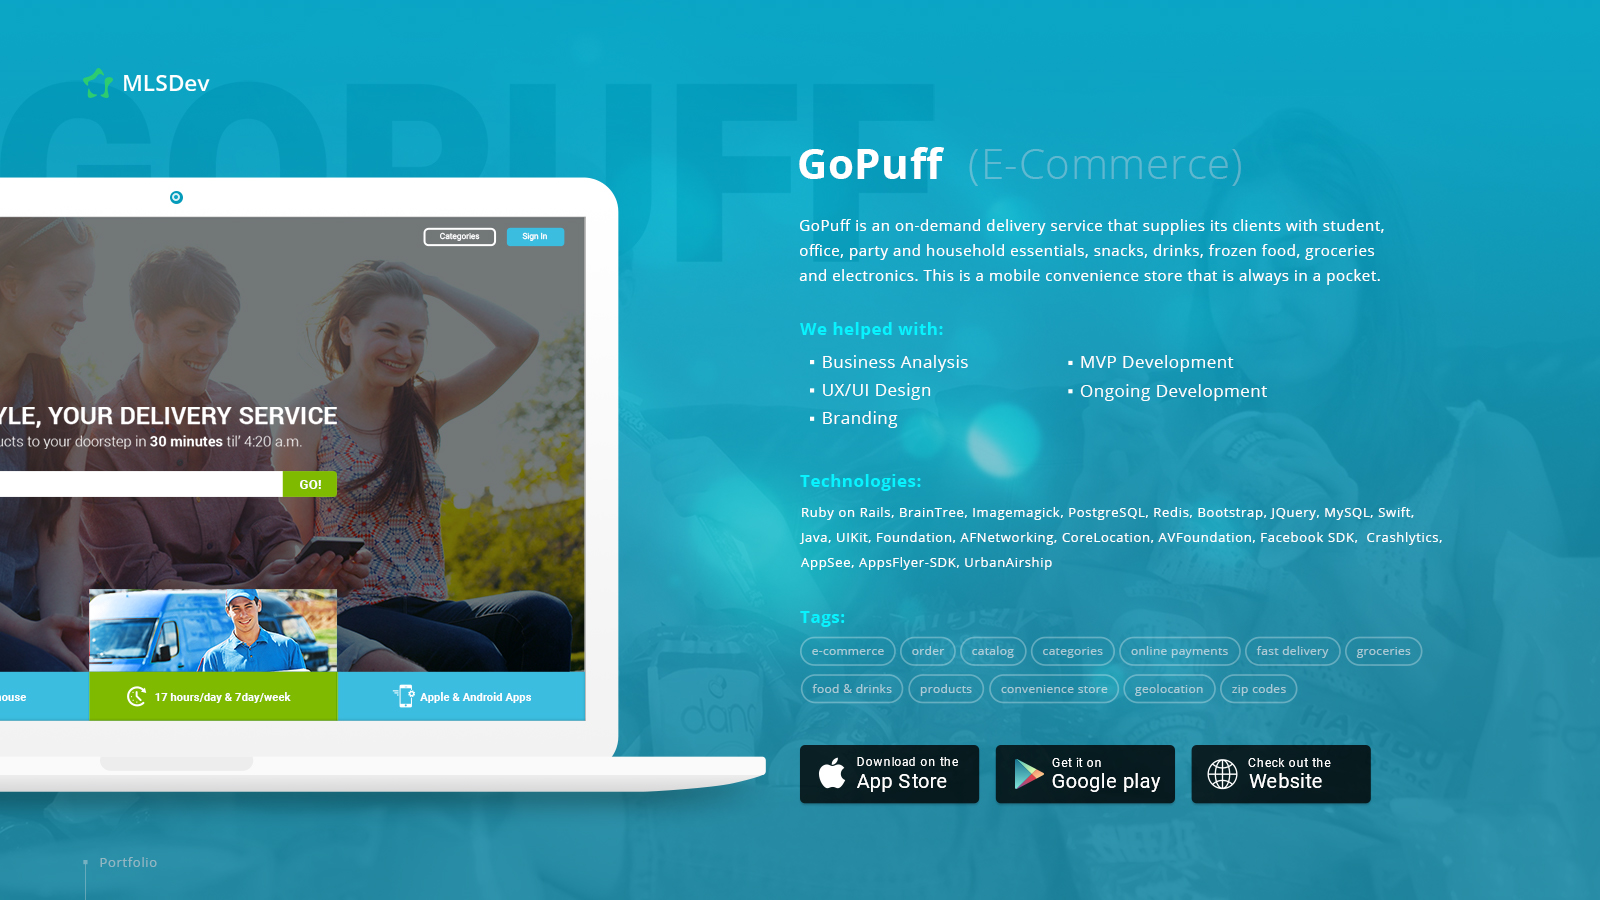 On-demand Delivery Service: GoPuff